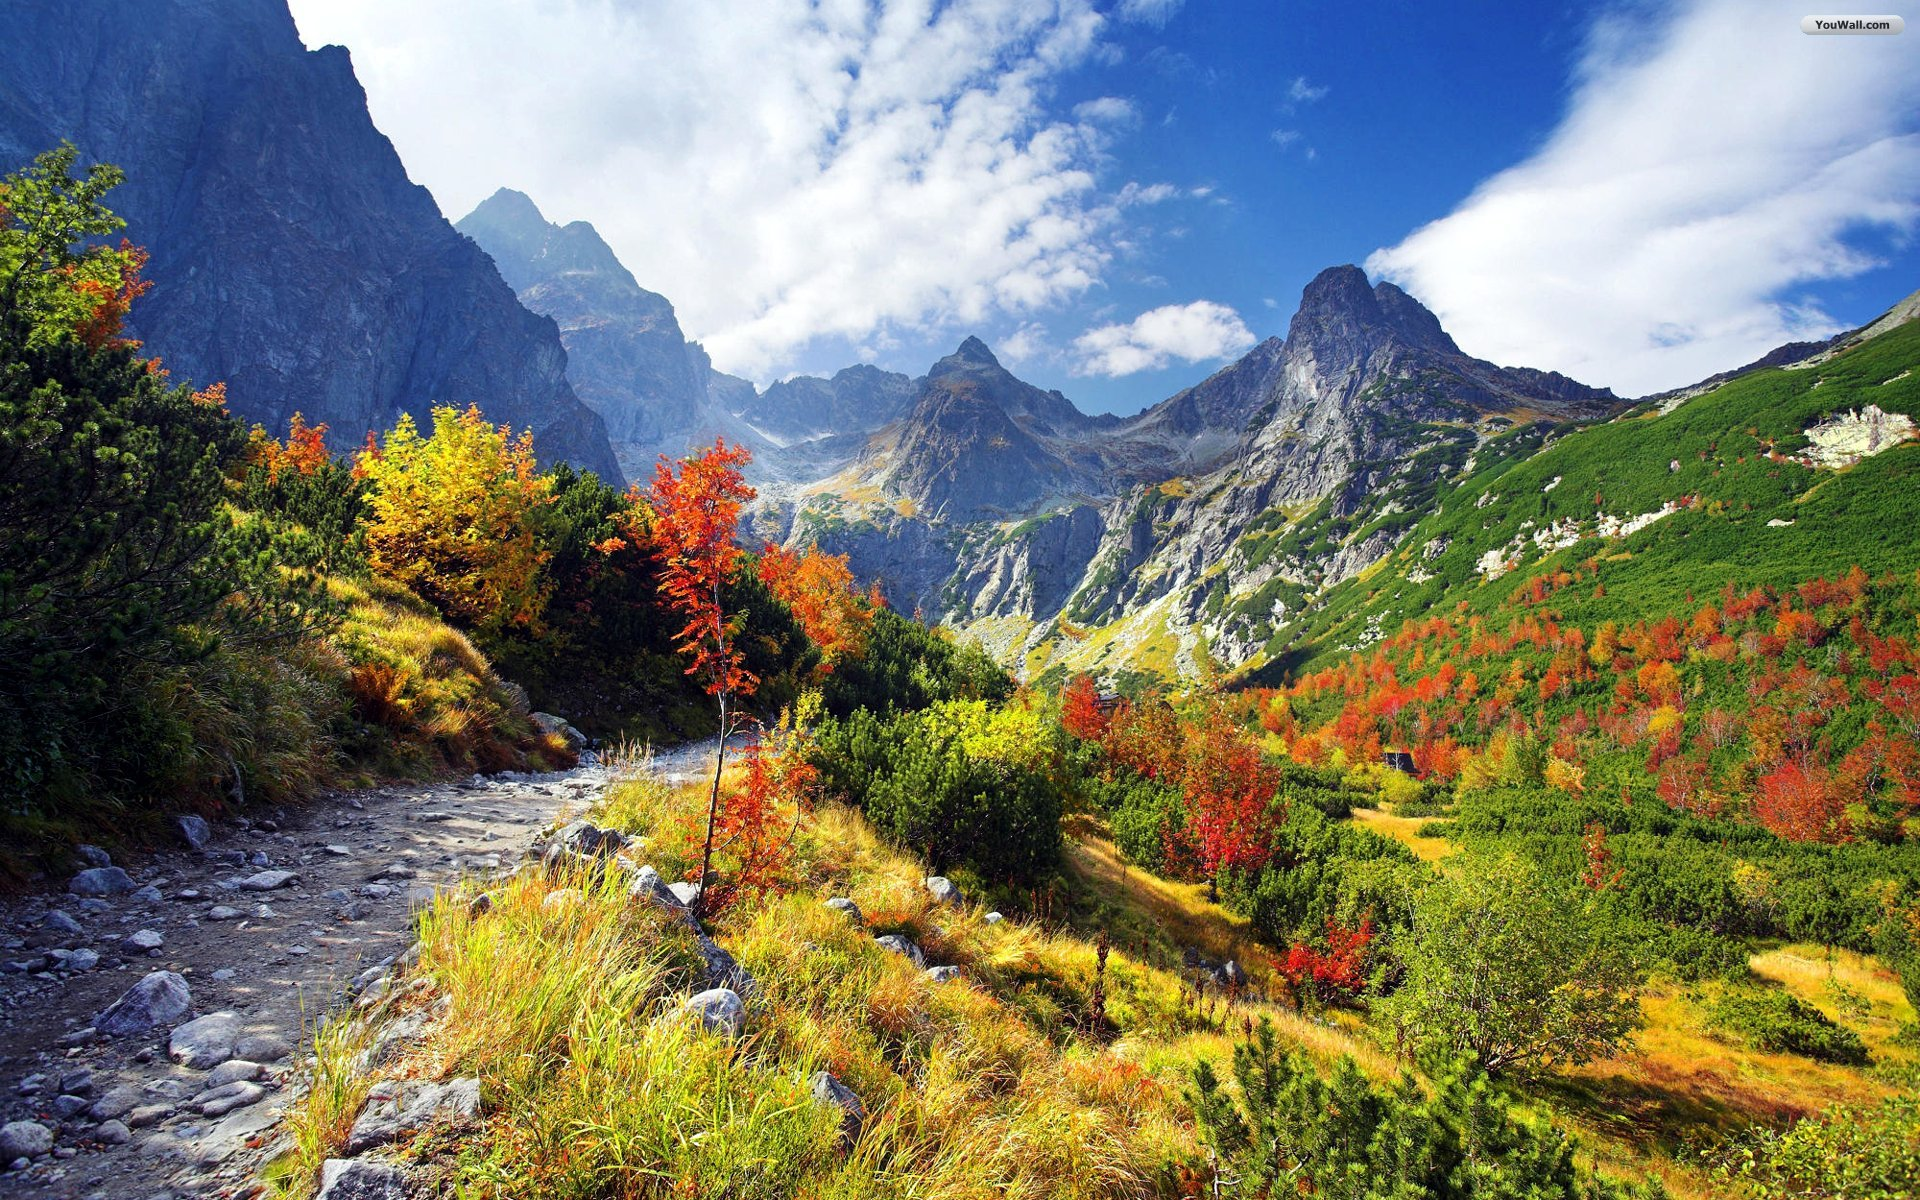 Autumn colours in High Tatras